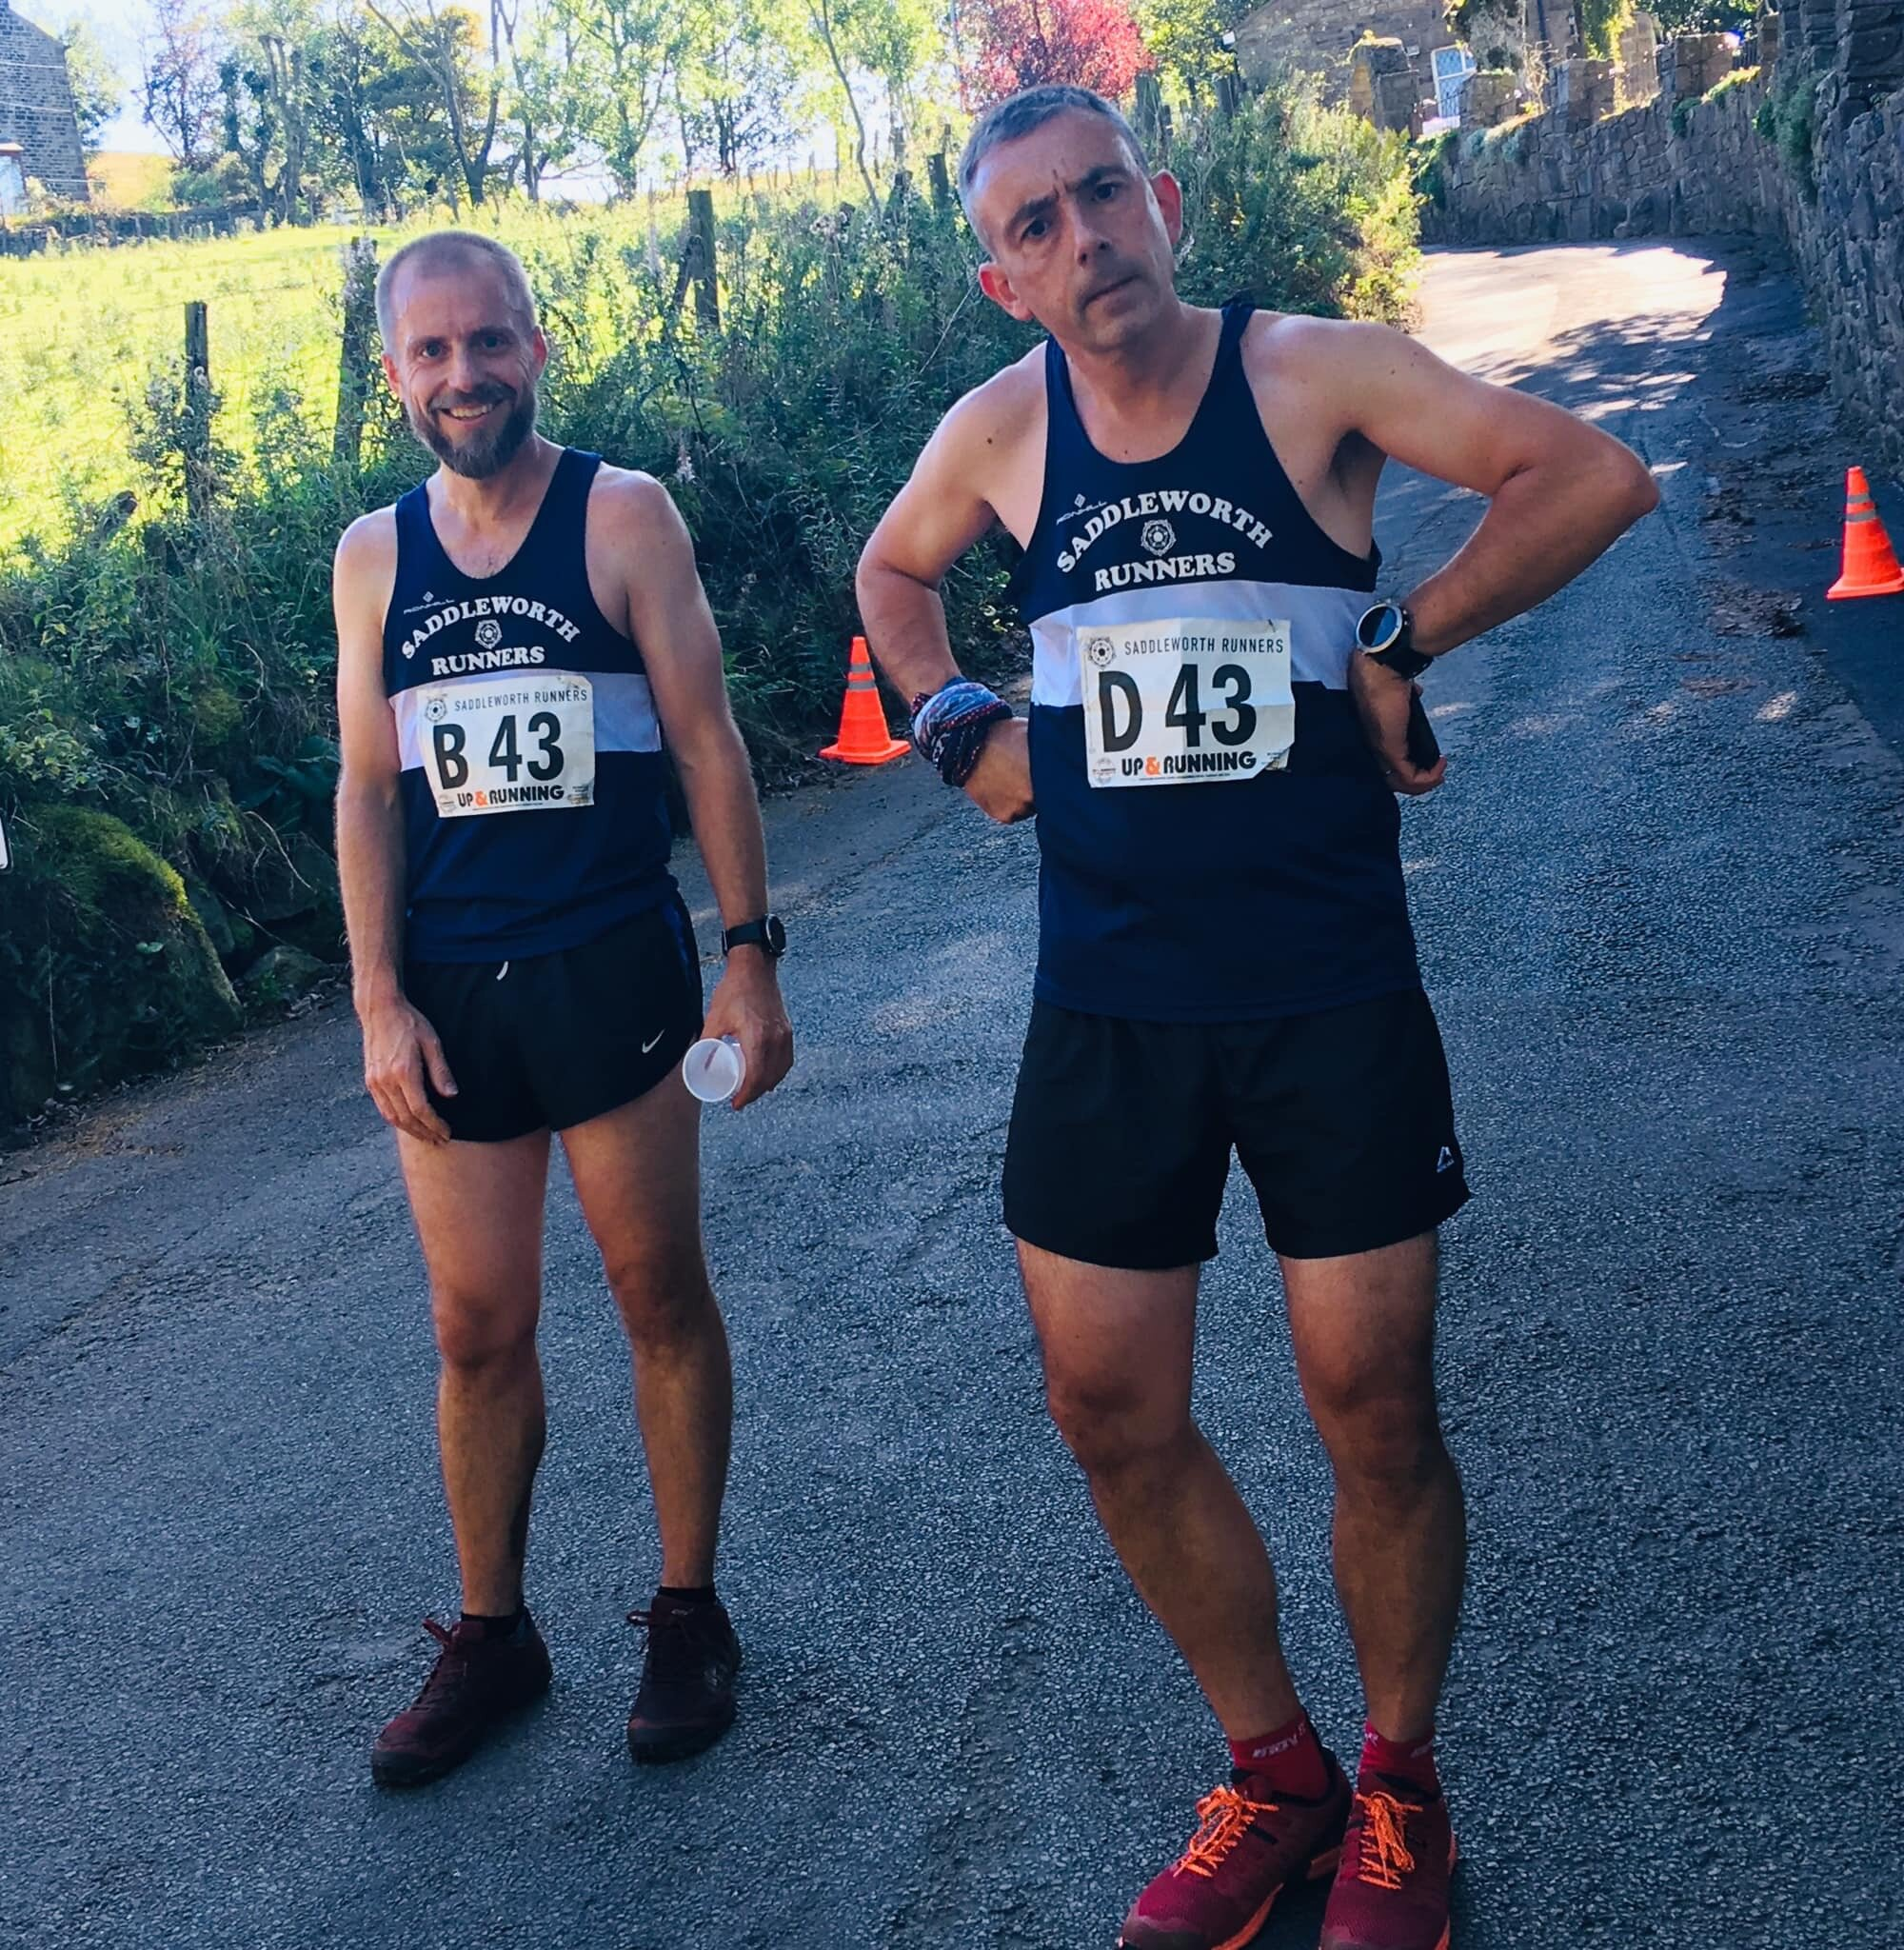 Haigh and Cobley in numbers - legs 2 and 4 fell.